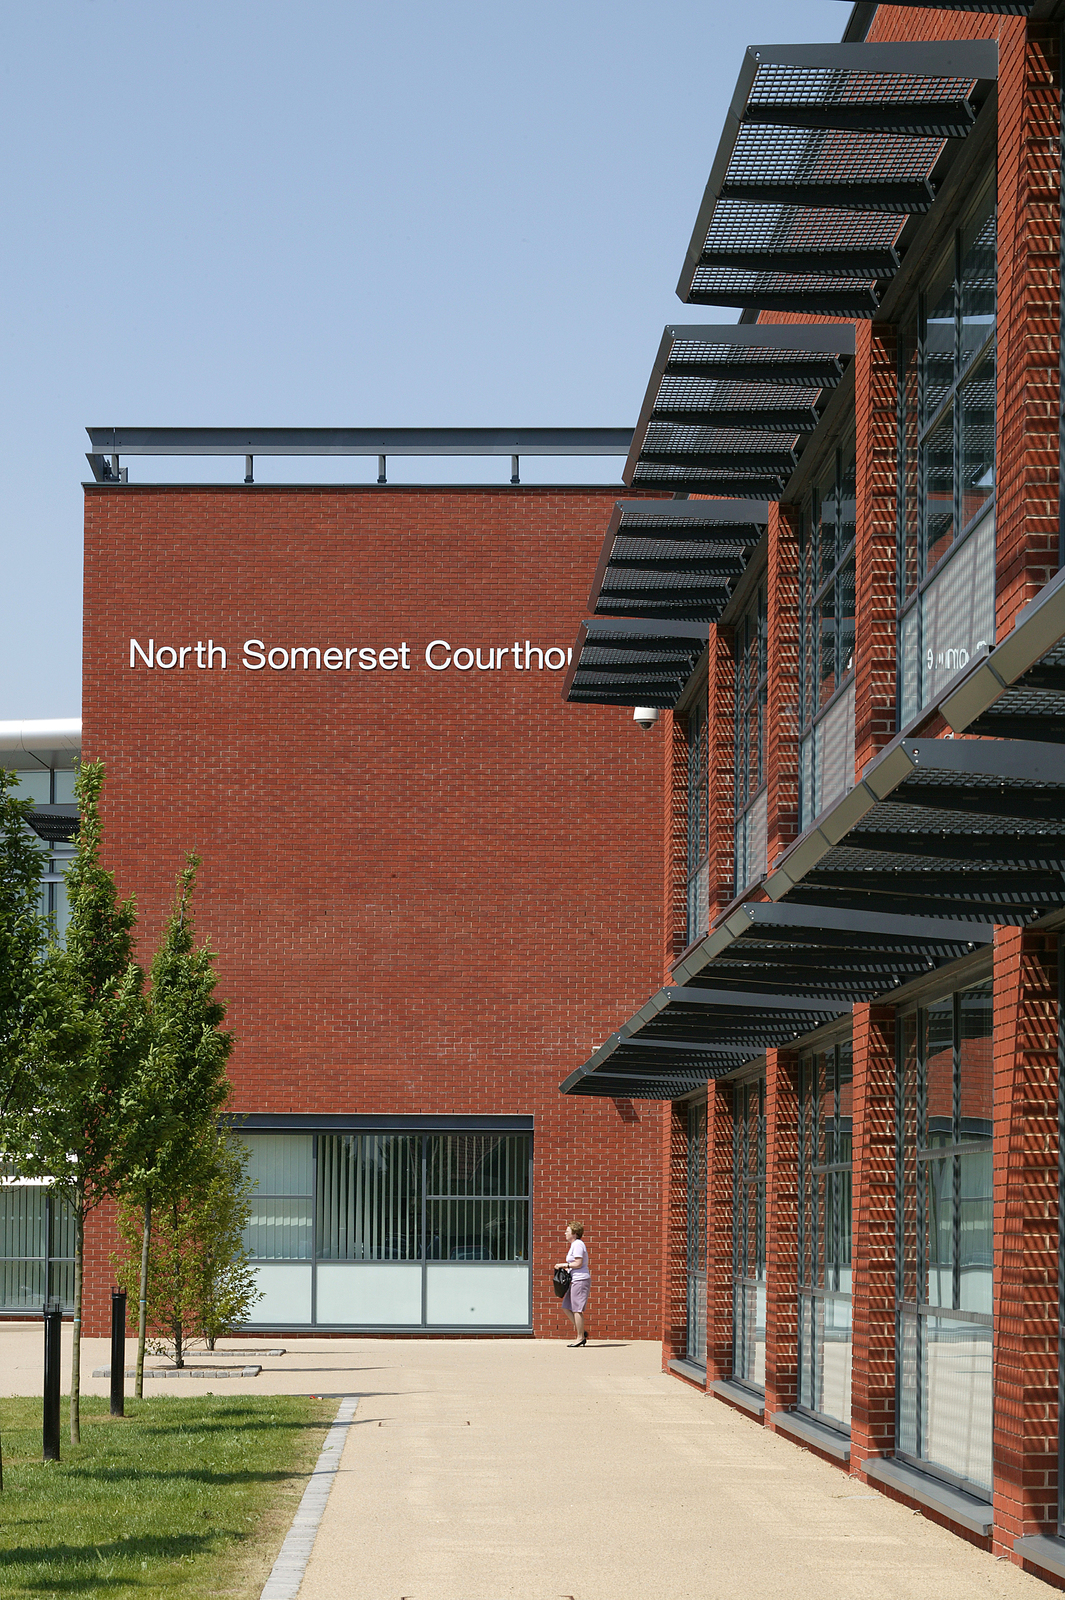 North Somerset Courthouse 05